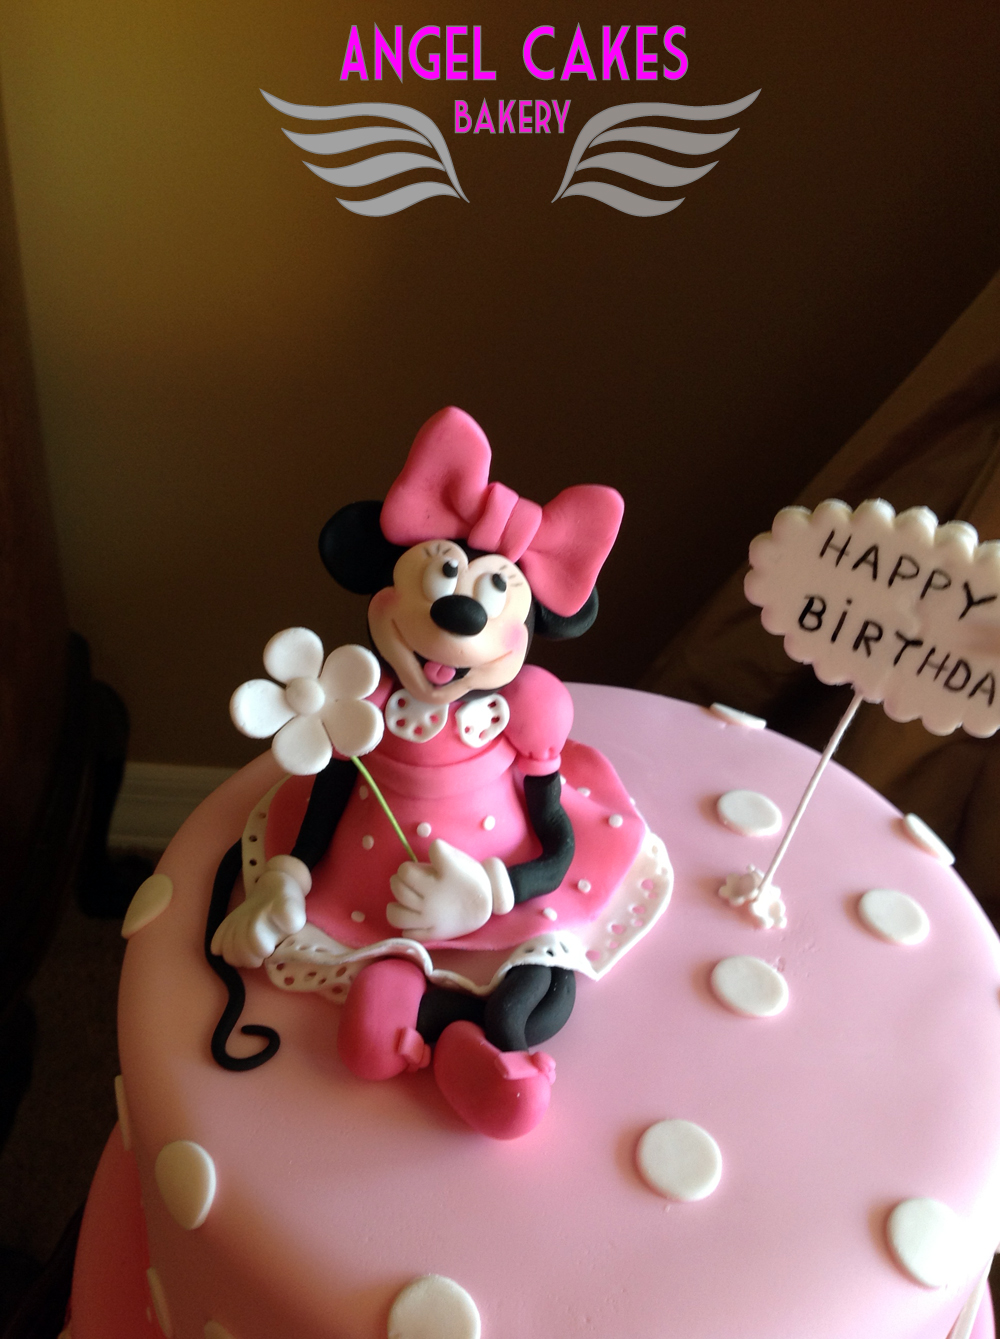 Angel Cakes Bakery Minnie Mouse 1st Birthday Cake